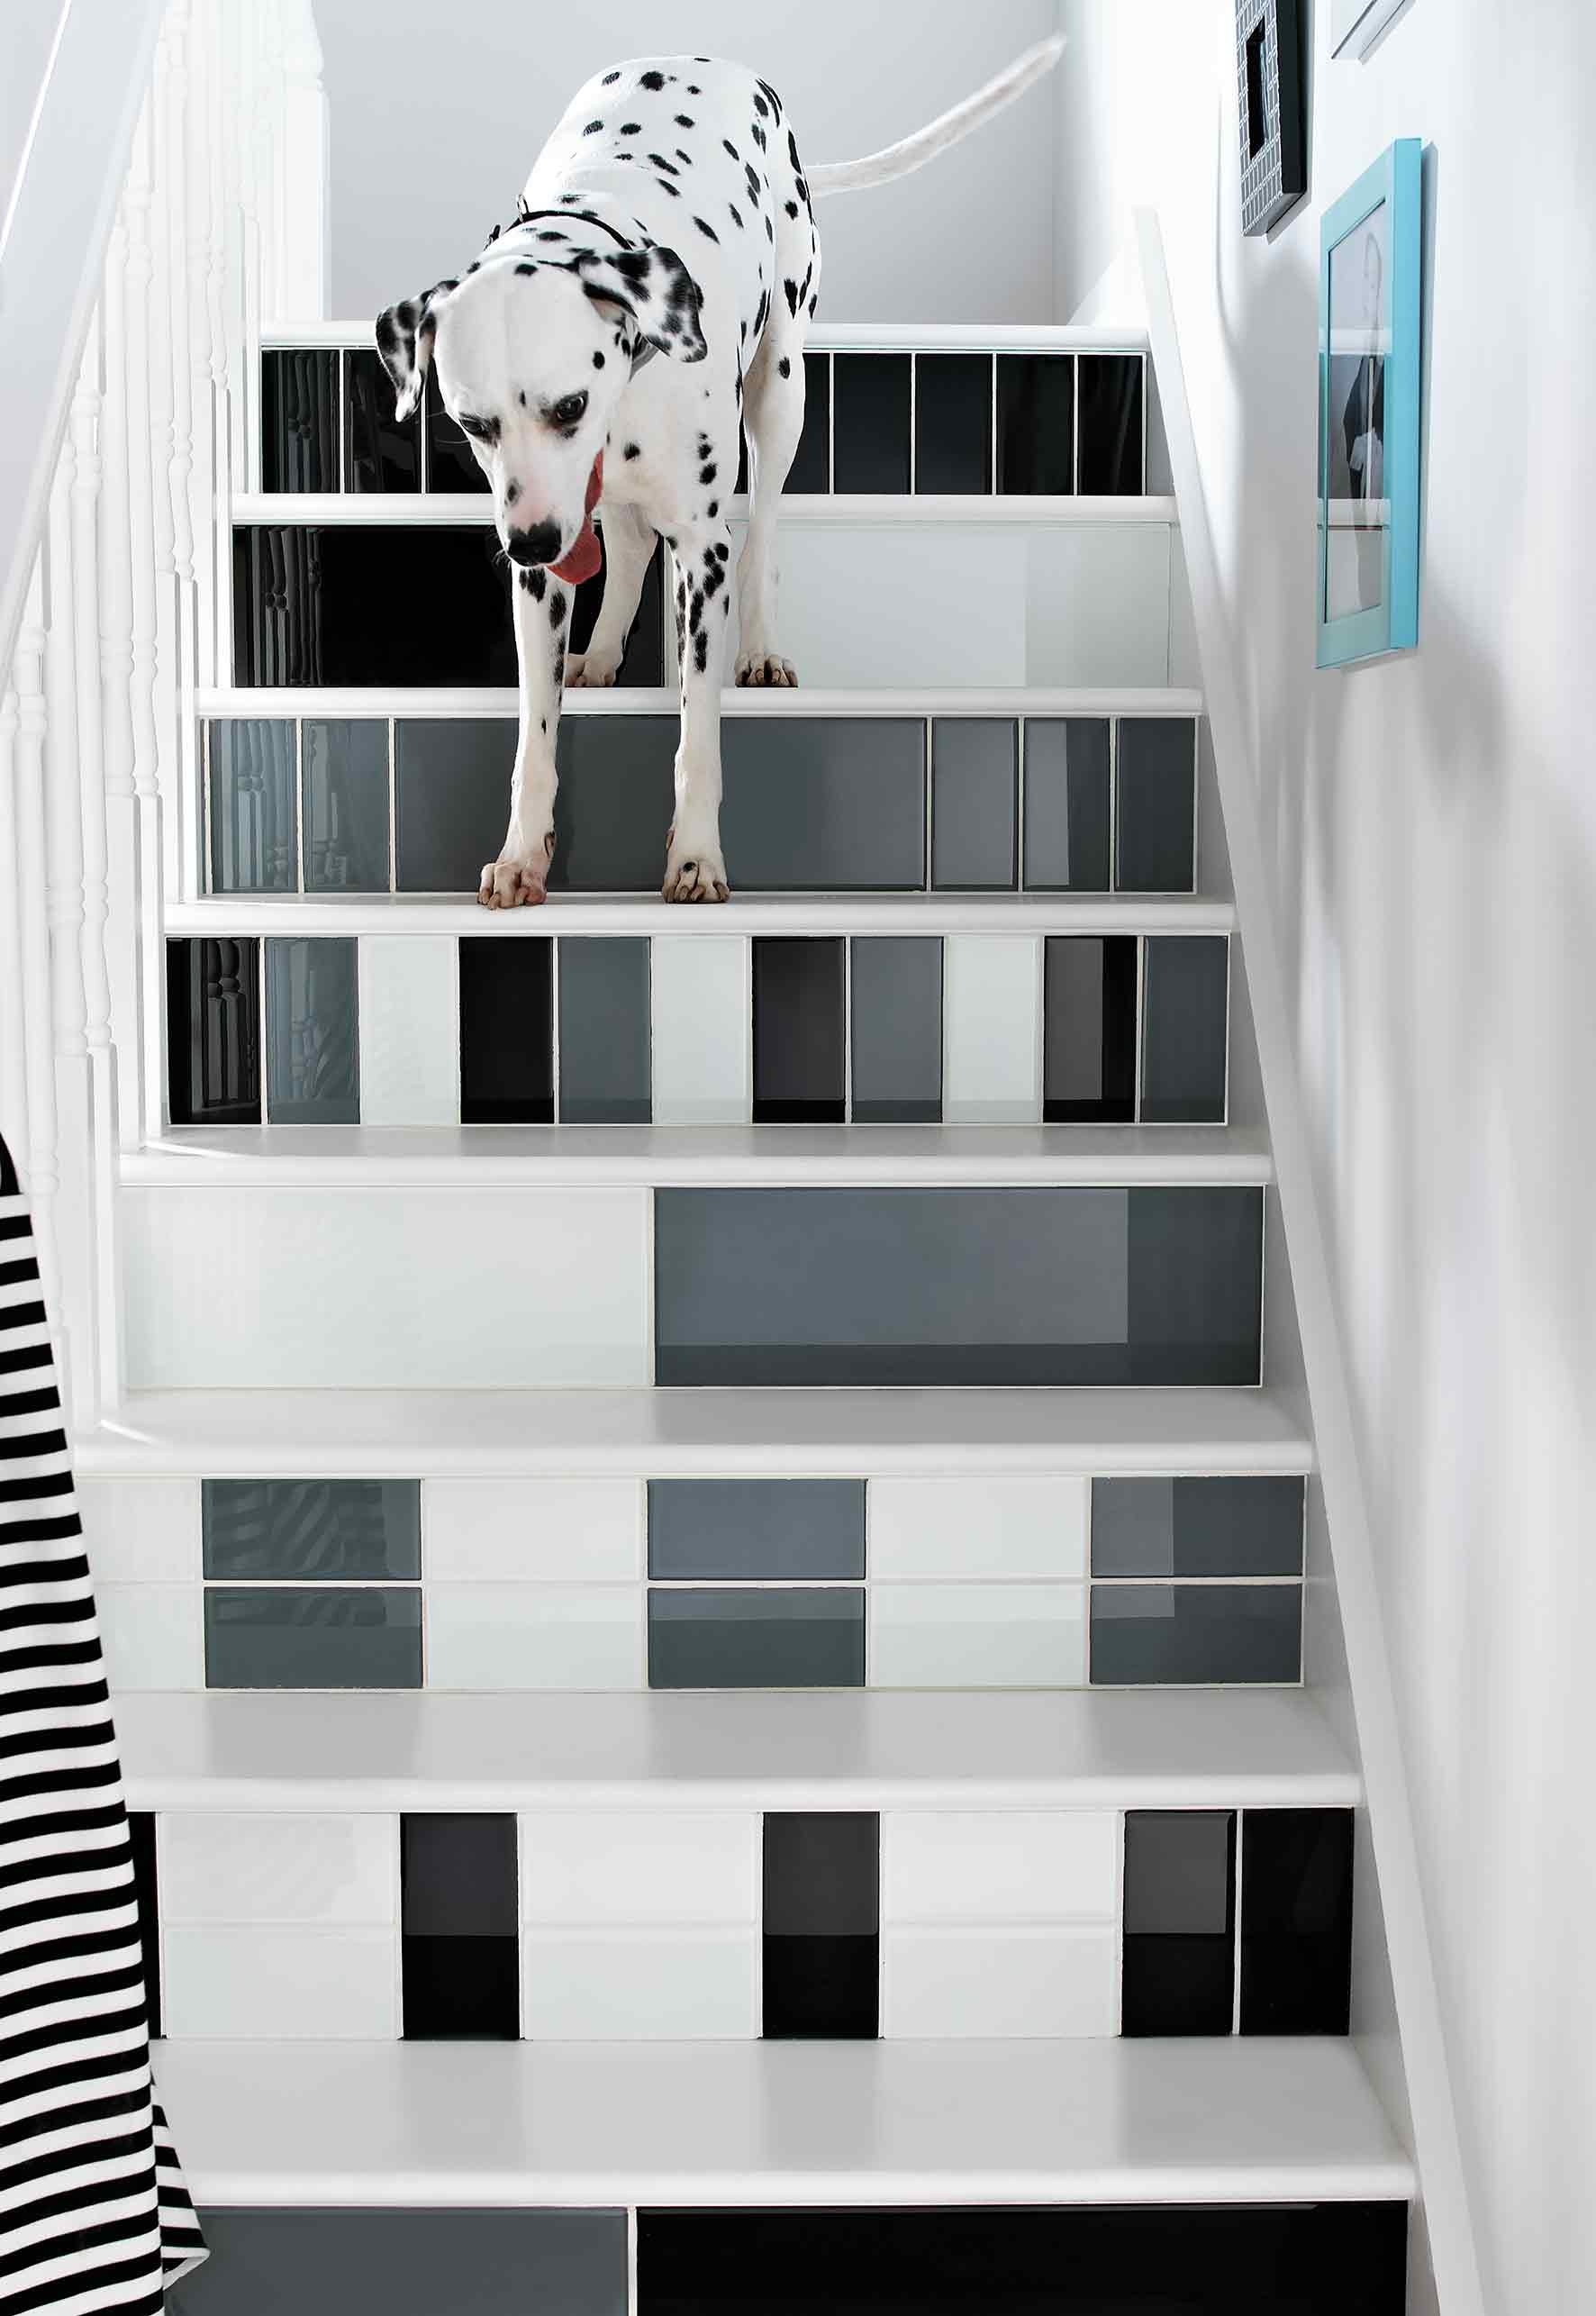 Monochrome-Staircase-with-Dog